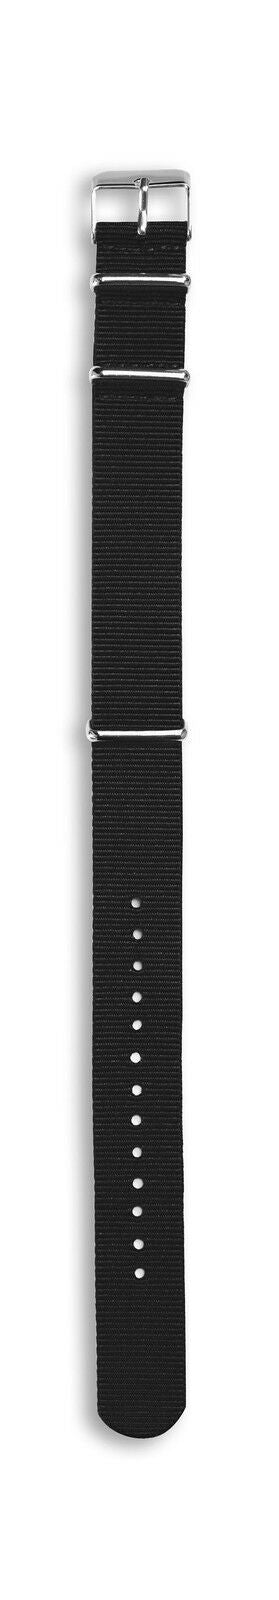 Compass Spare Fabric Watch Strap - Black 987694547